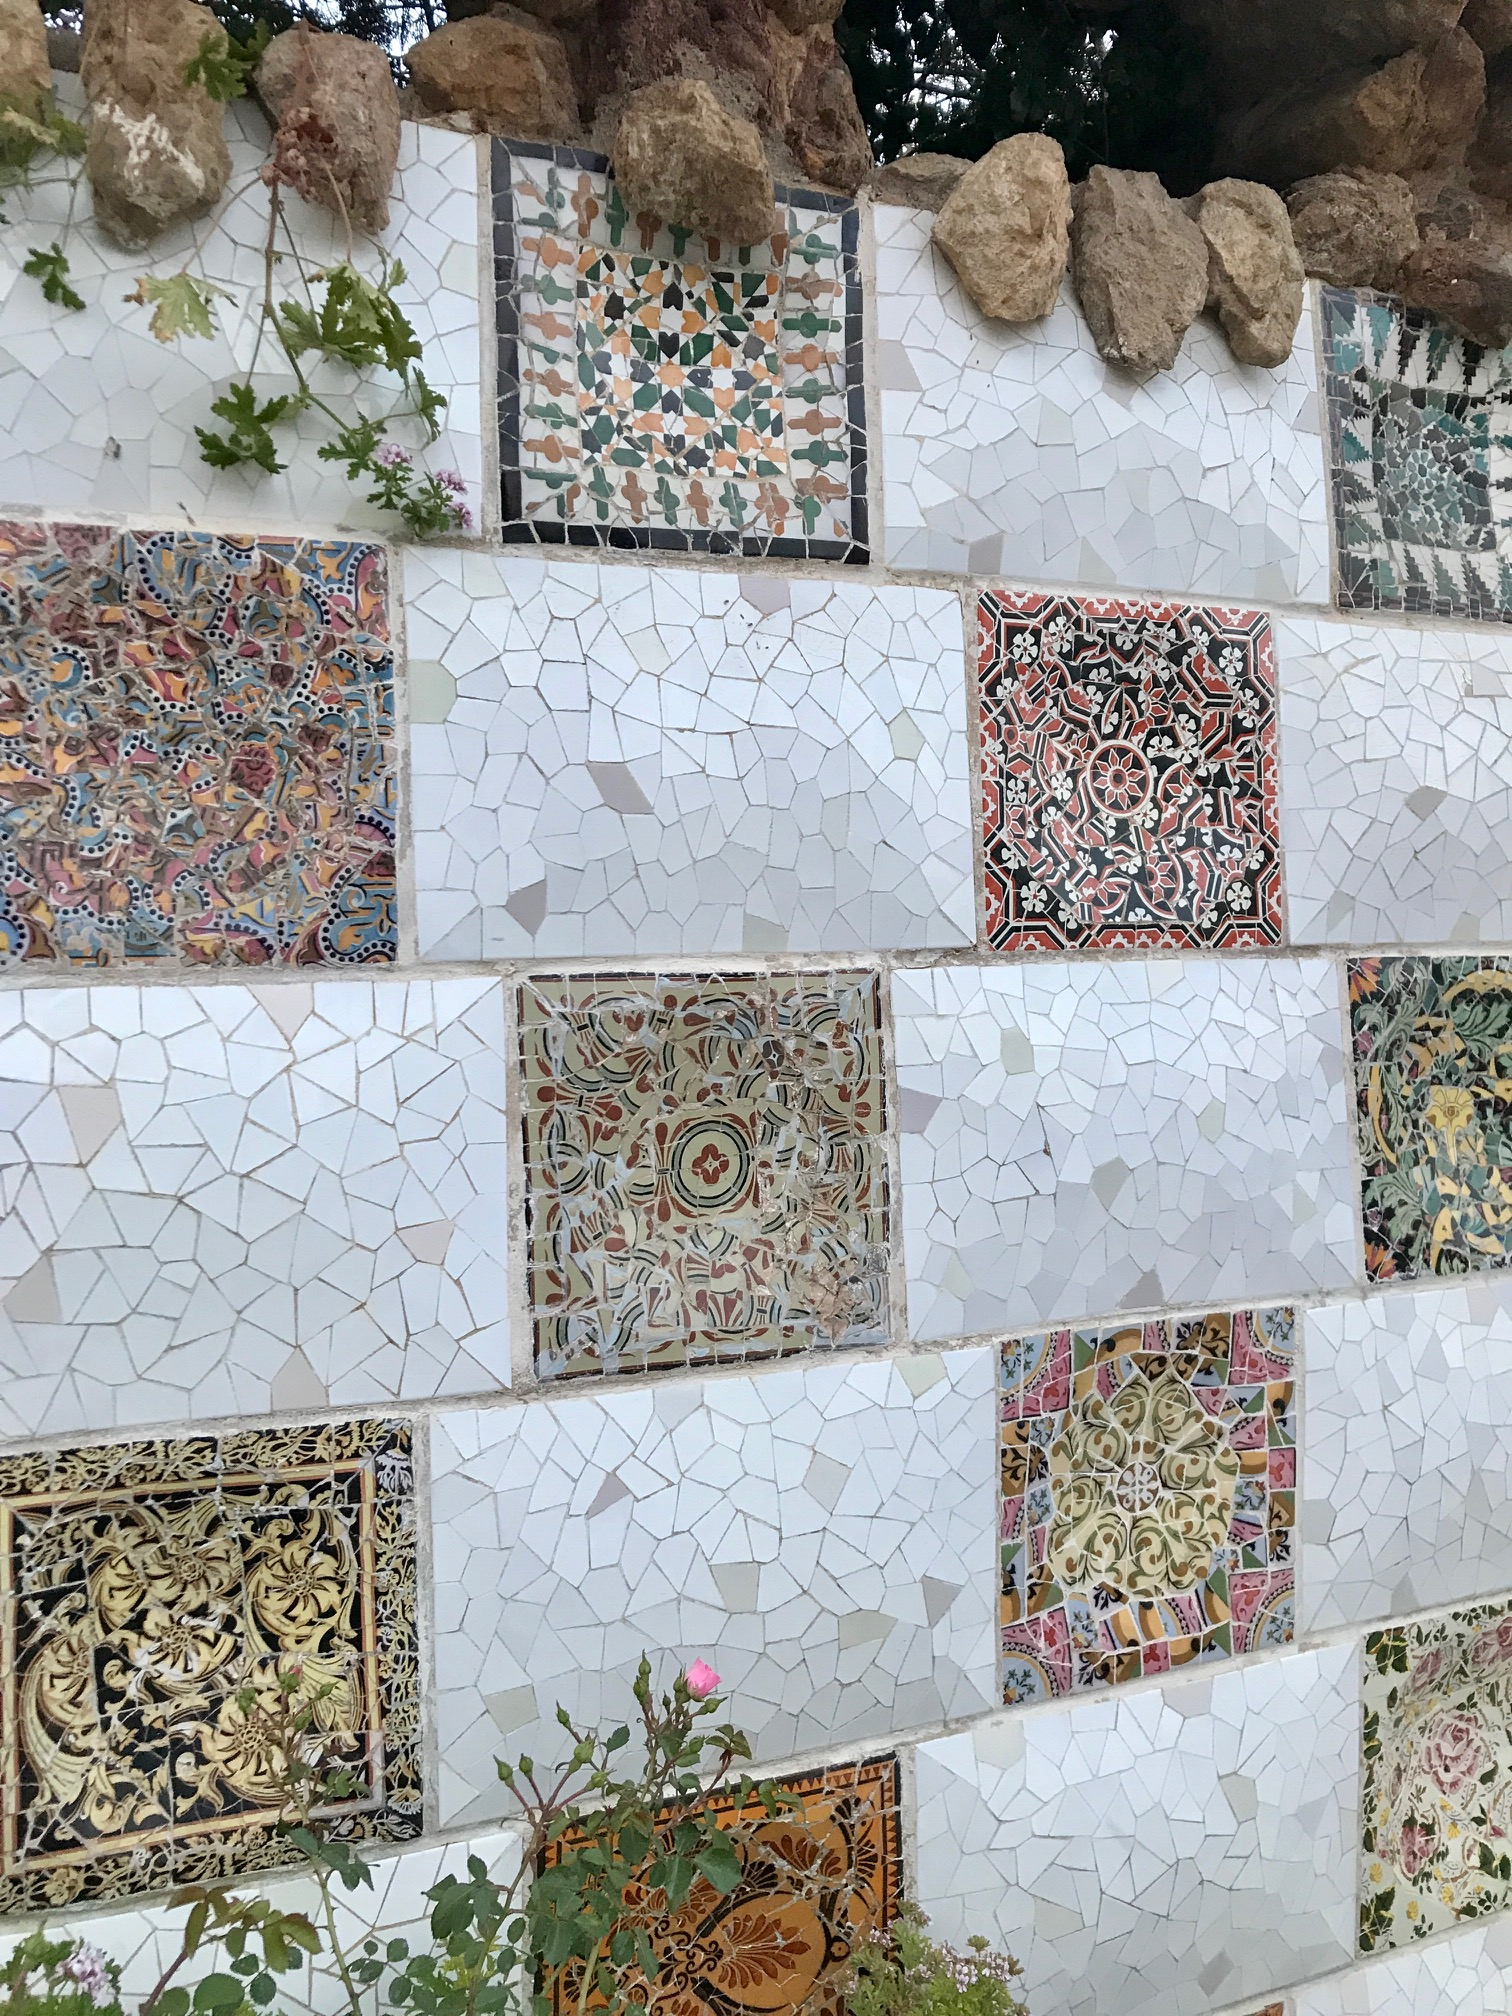 Mosaic tiles at Gaudi's Park   Güell